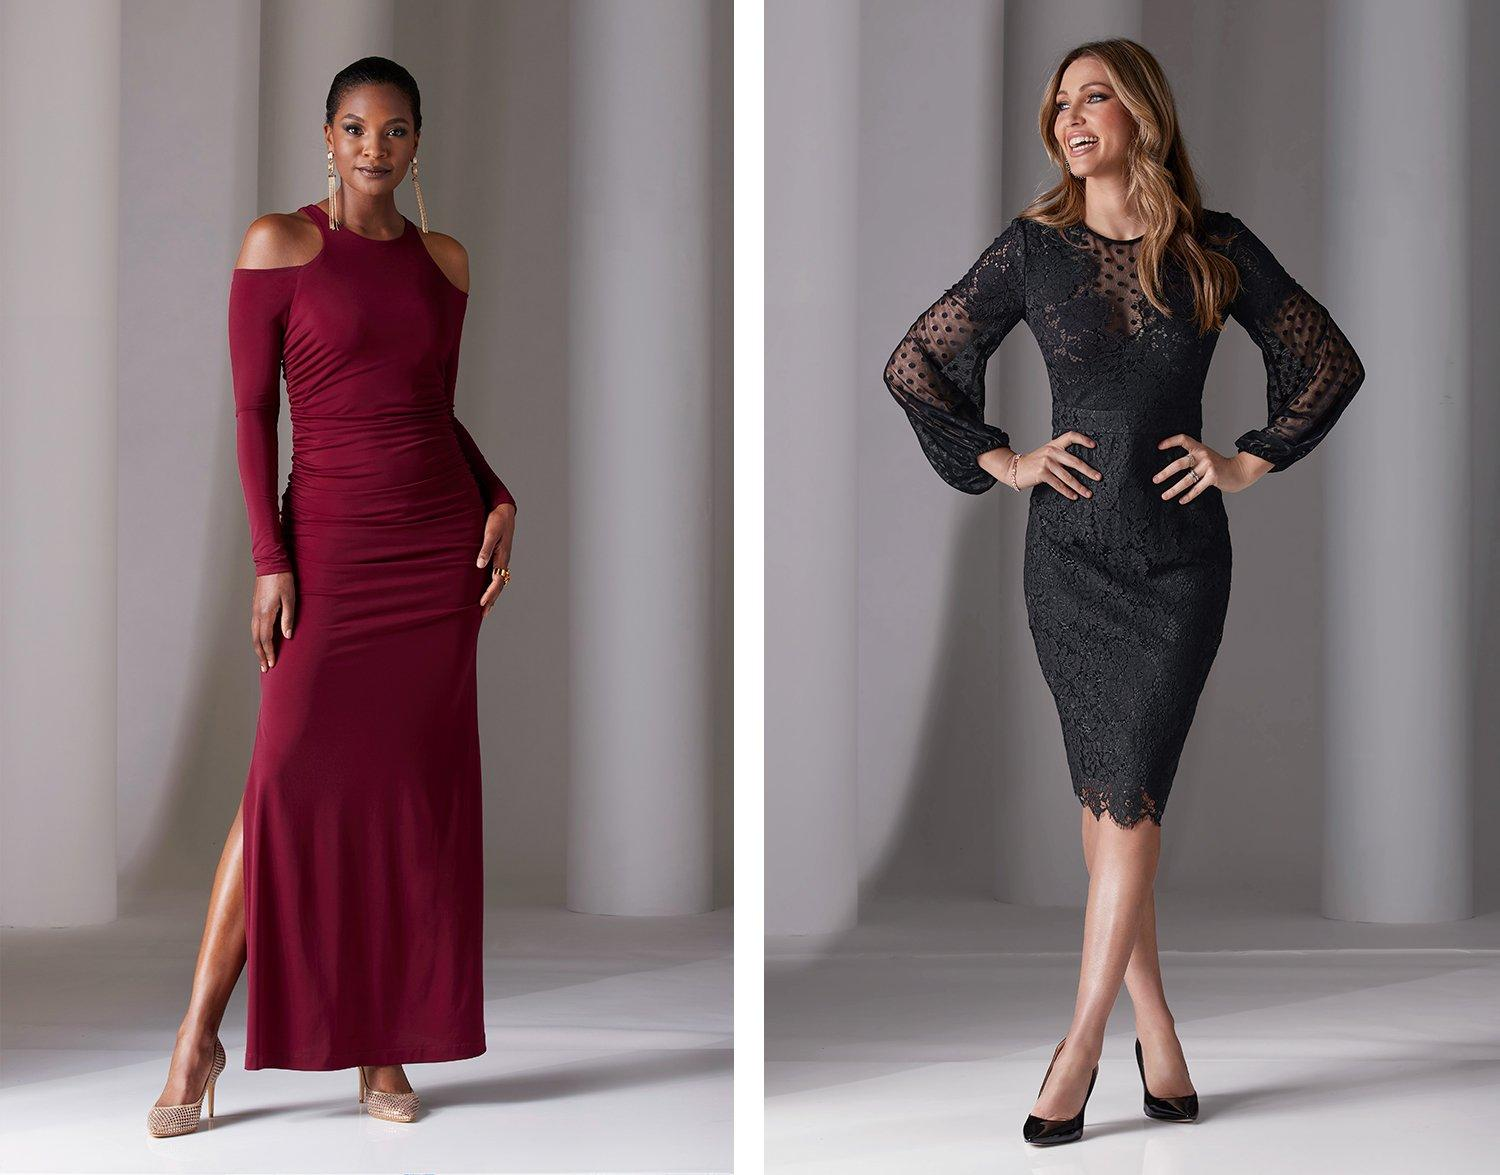 left model wearing a wine colored cold-shoulder long-sleeve side slit gown, gold earrings, and diamante pumps. right model wearing a black lace and swiss dot long-sleeve sheath dress and black pumps.